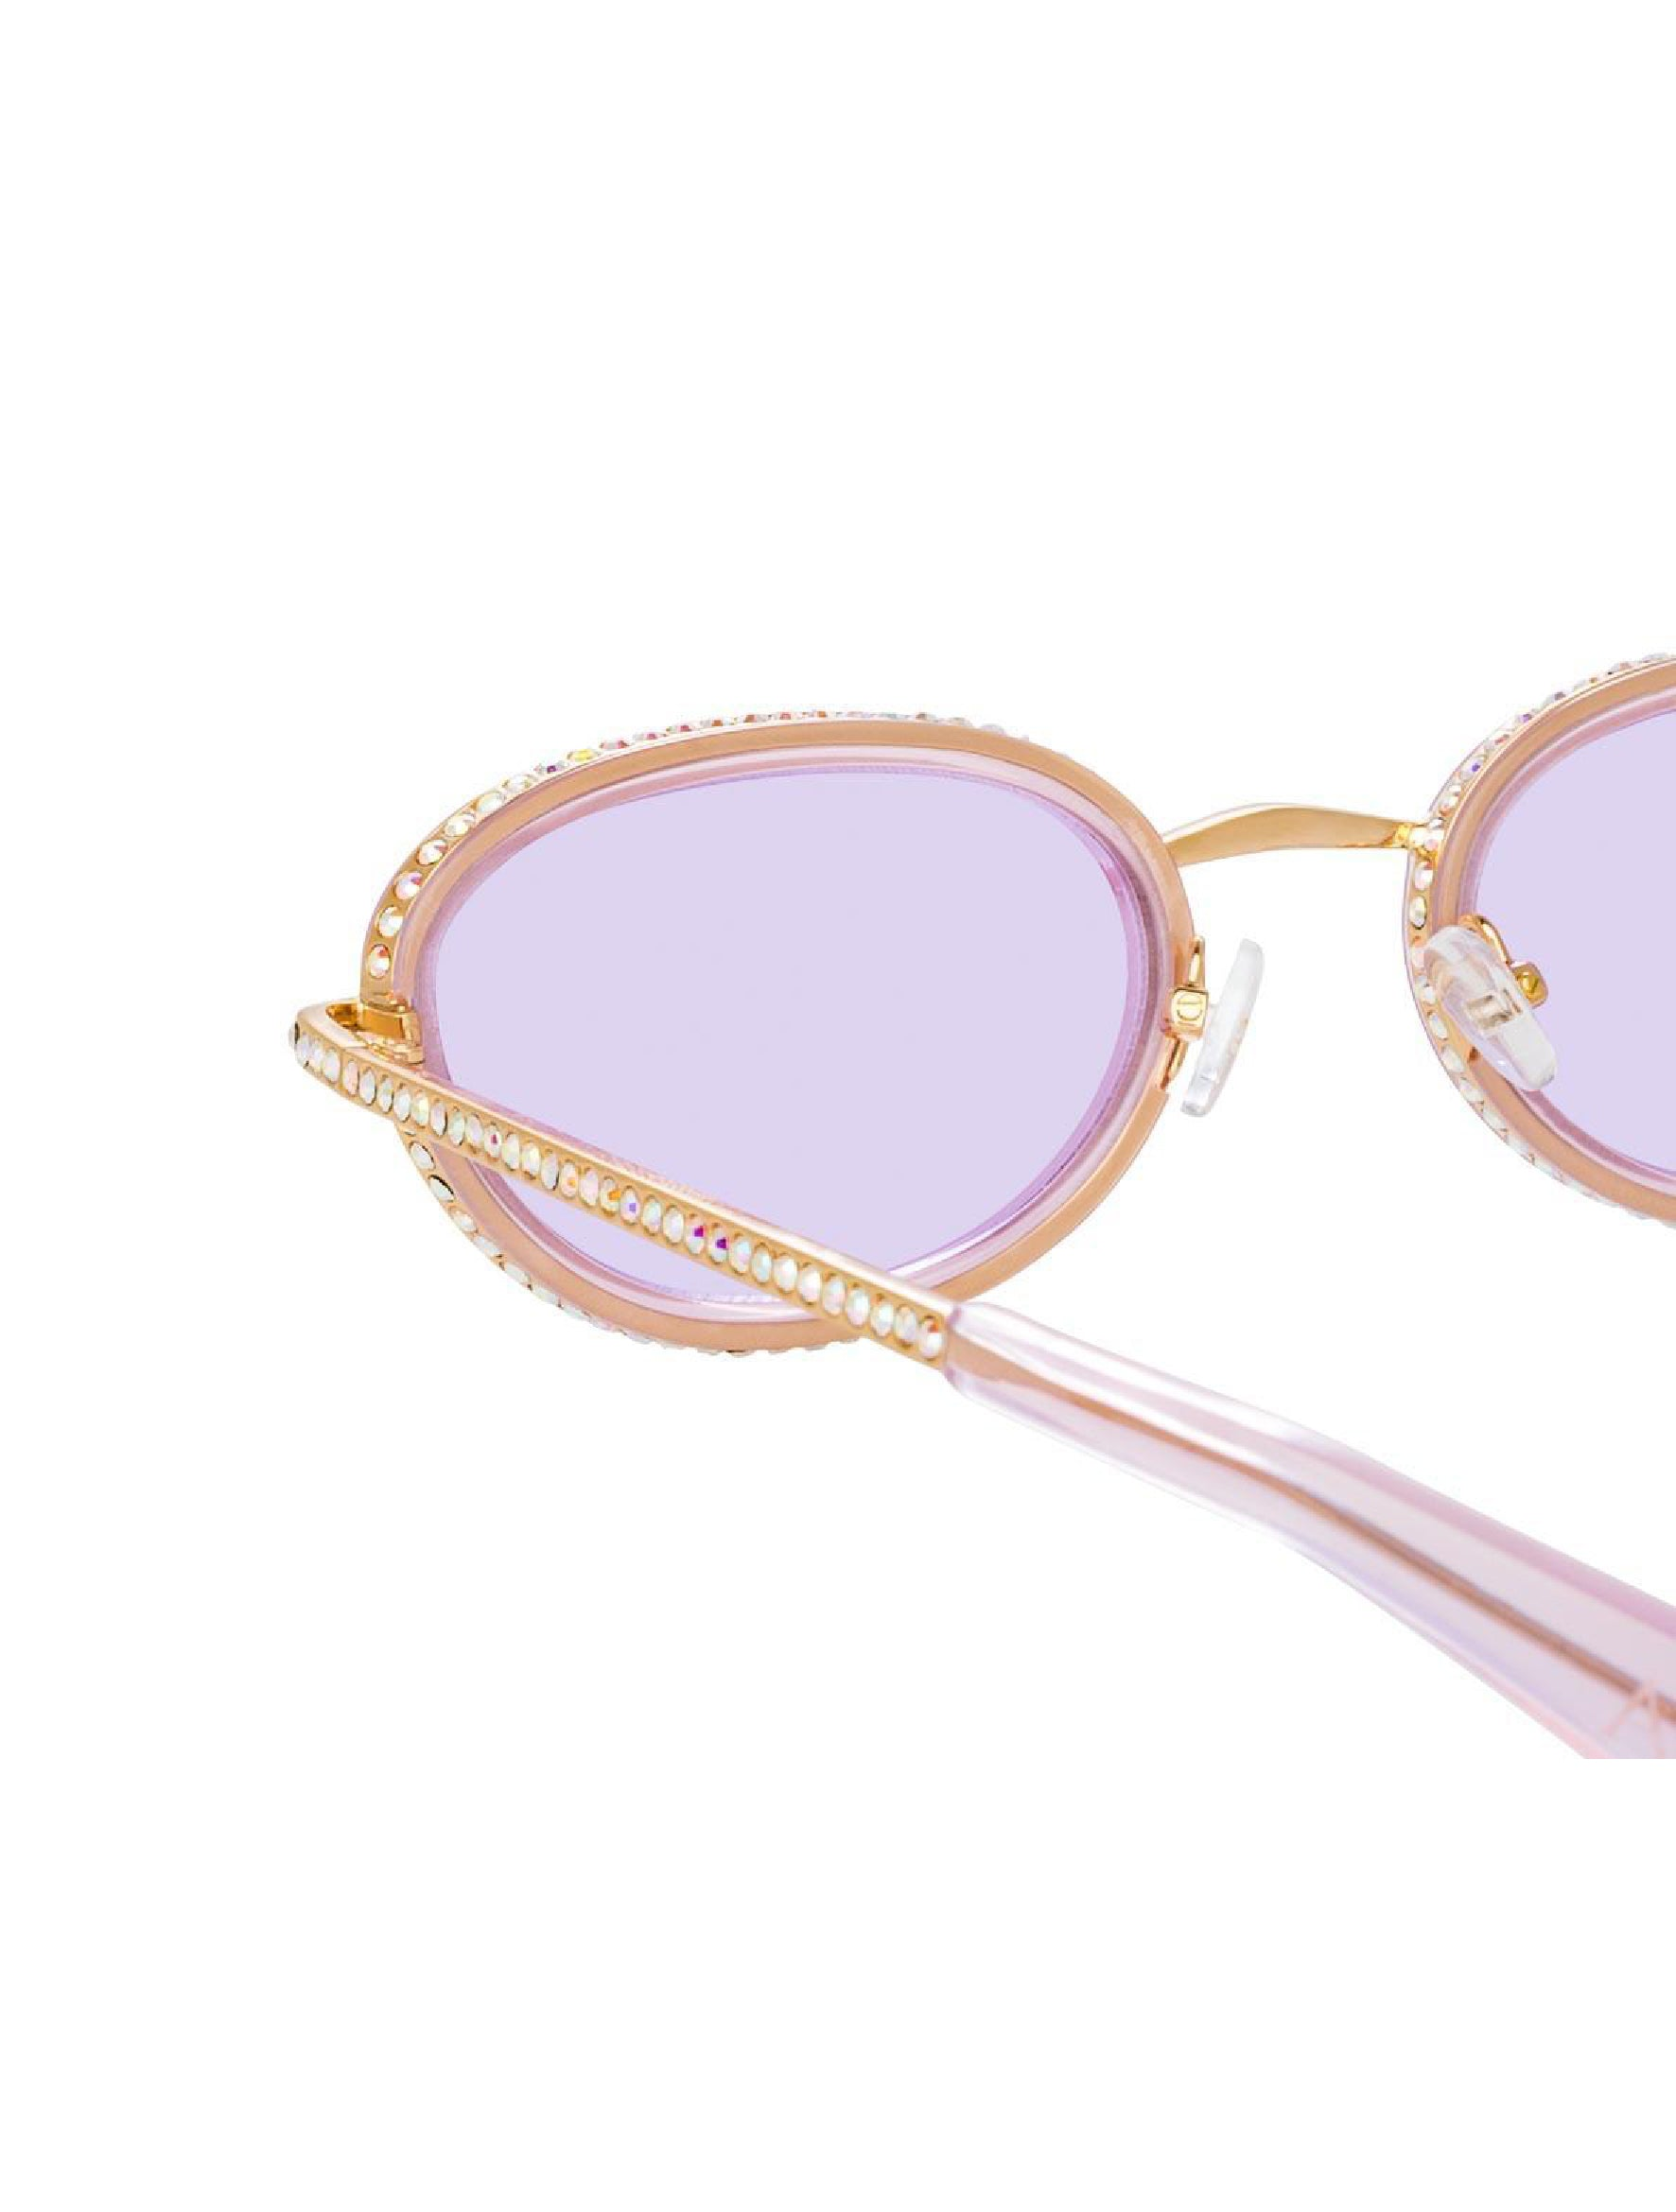 Oval Sunglasses in Light Gold Tone